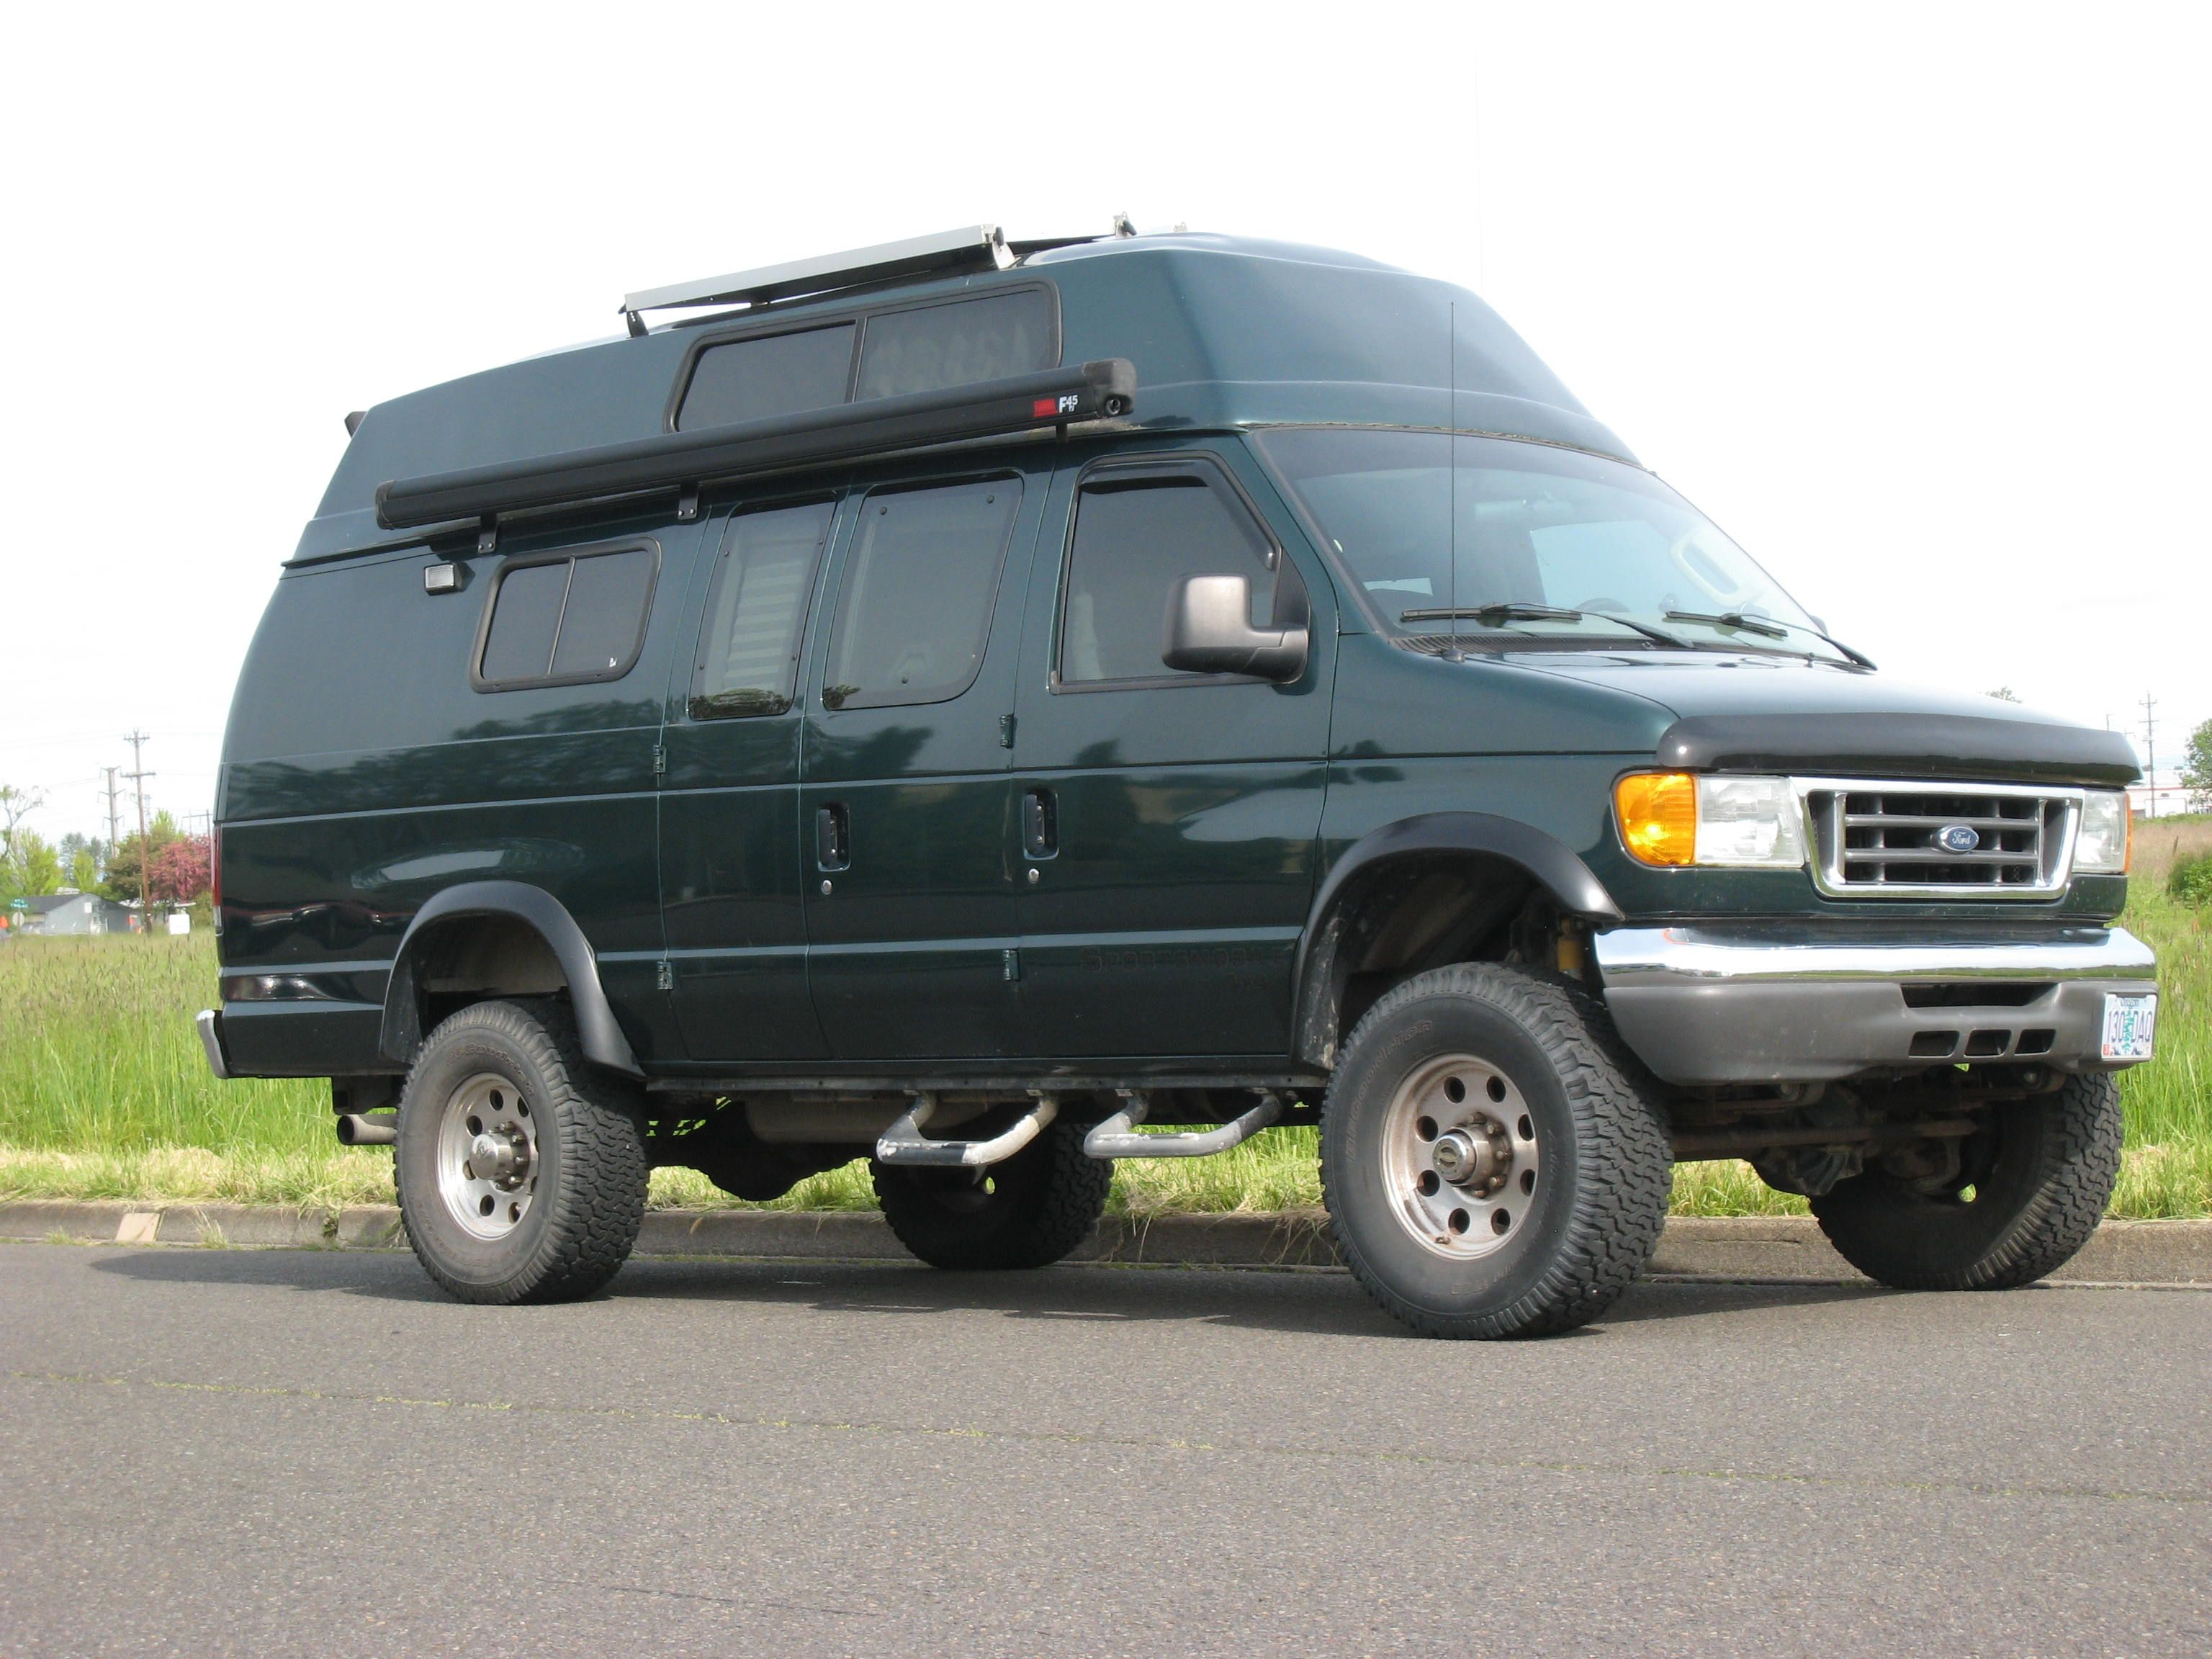 sportsmobile offers 50 camper van plans or will customize to meet your